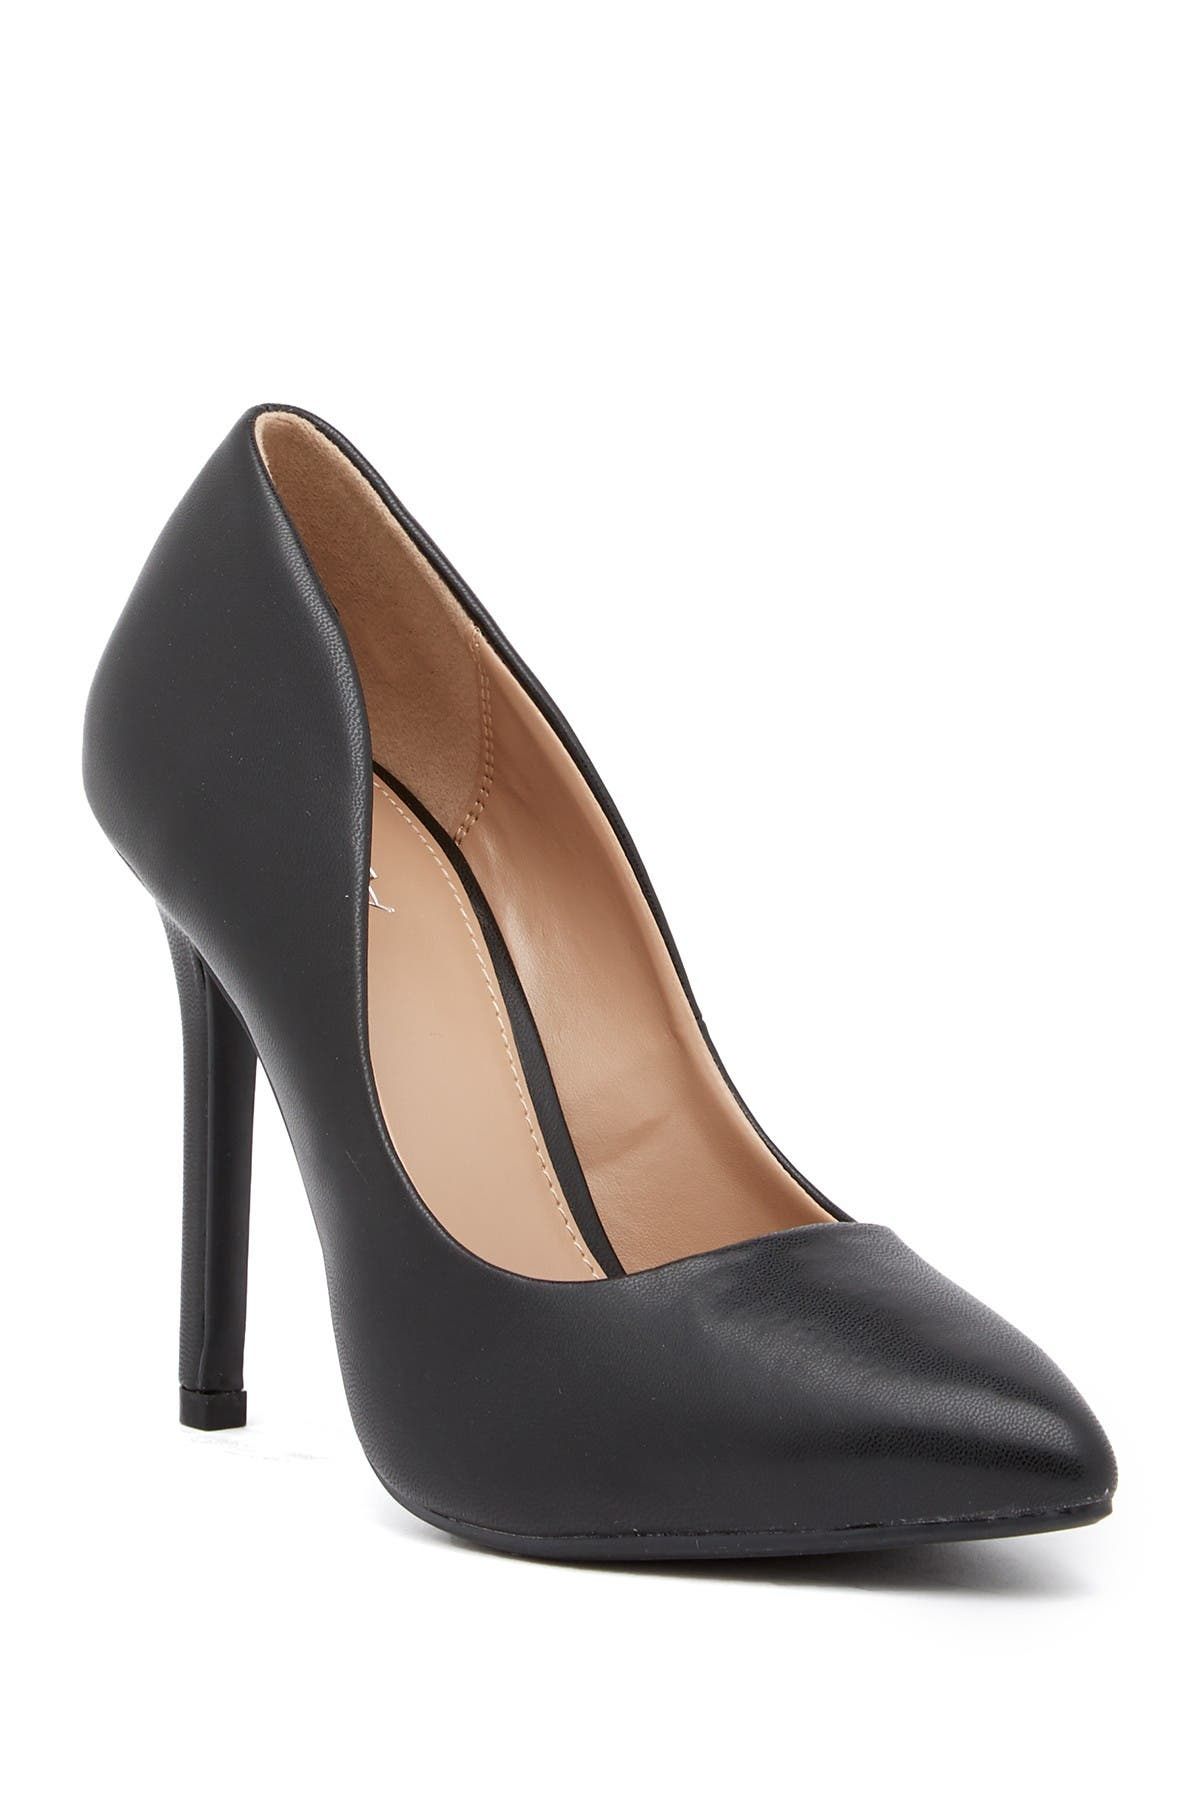 Image of Abound Whitnee Stiletto Pump - Wide Width Available